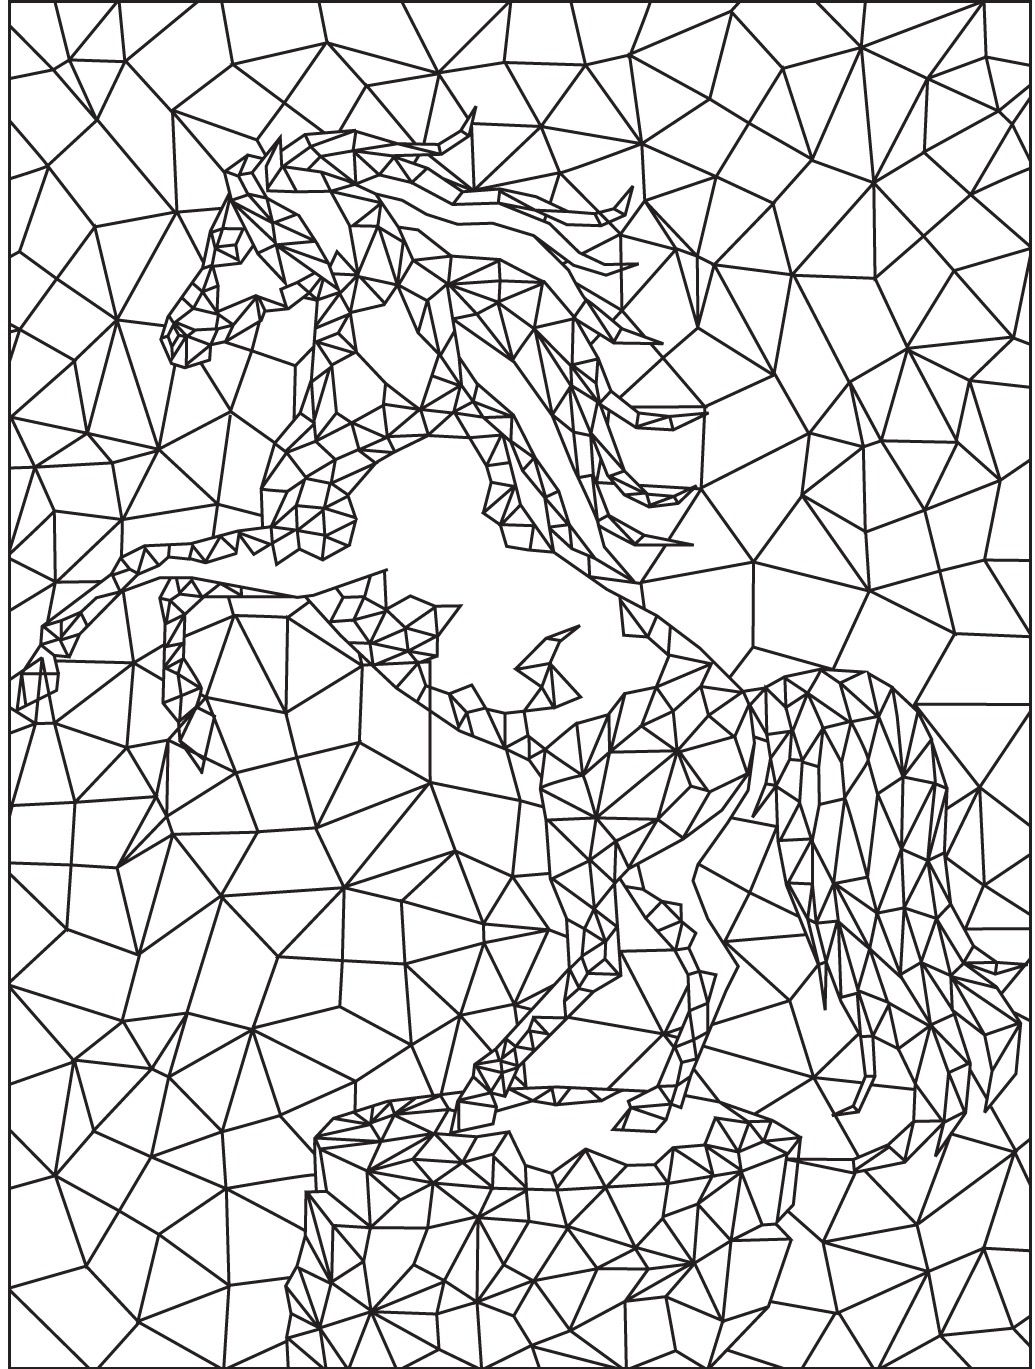 Geometric Horse Colouring Page Colorish App Free Coloring App